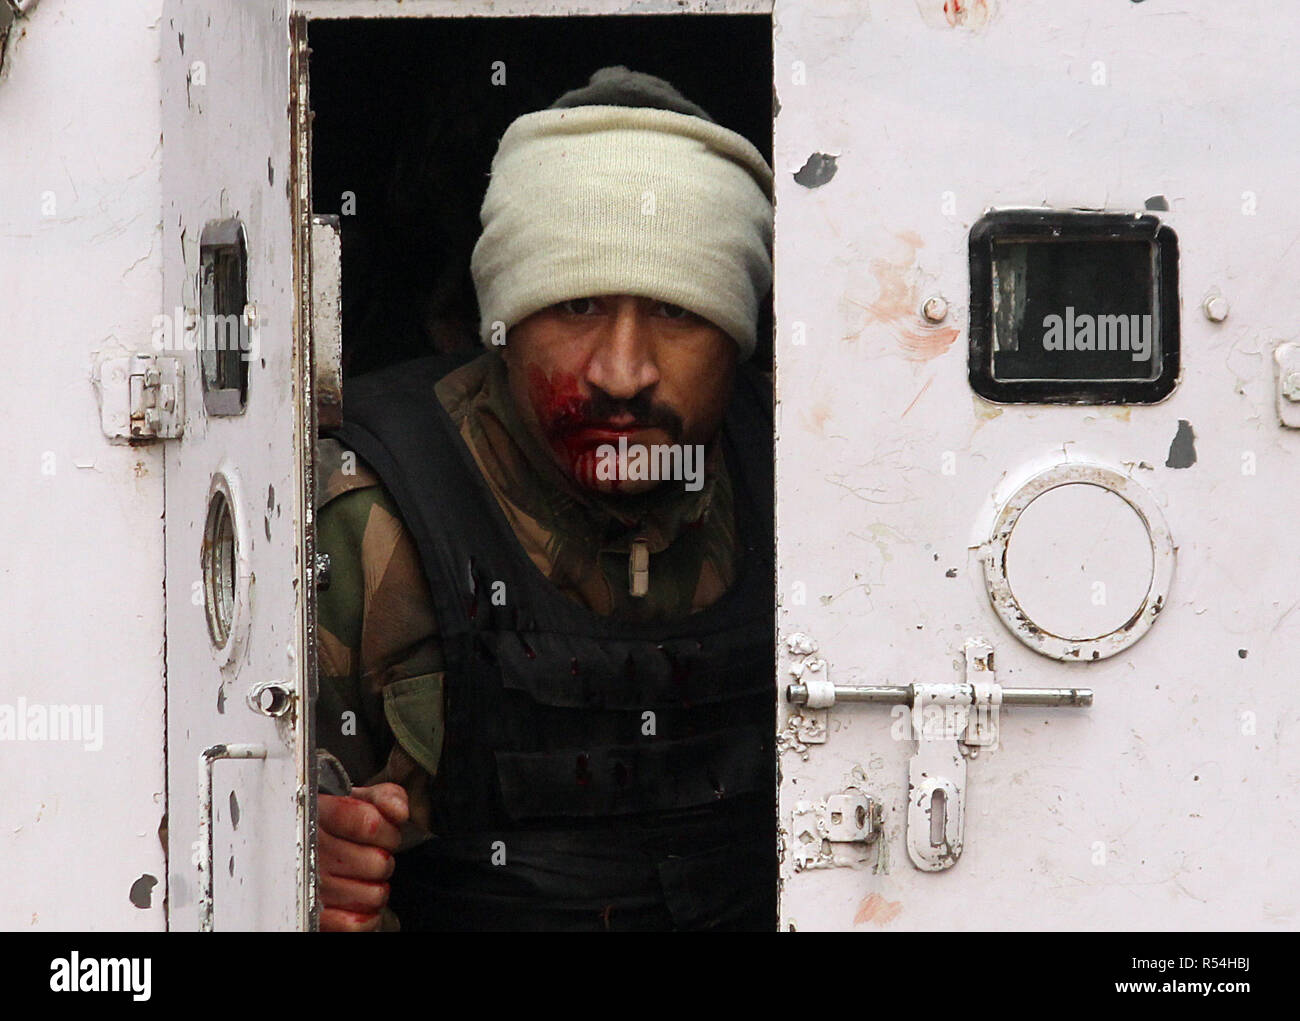 An Injured Indian soldier is seen inside the armoed vehicle